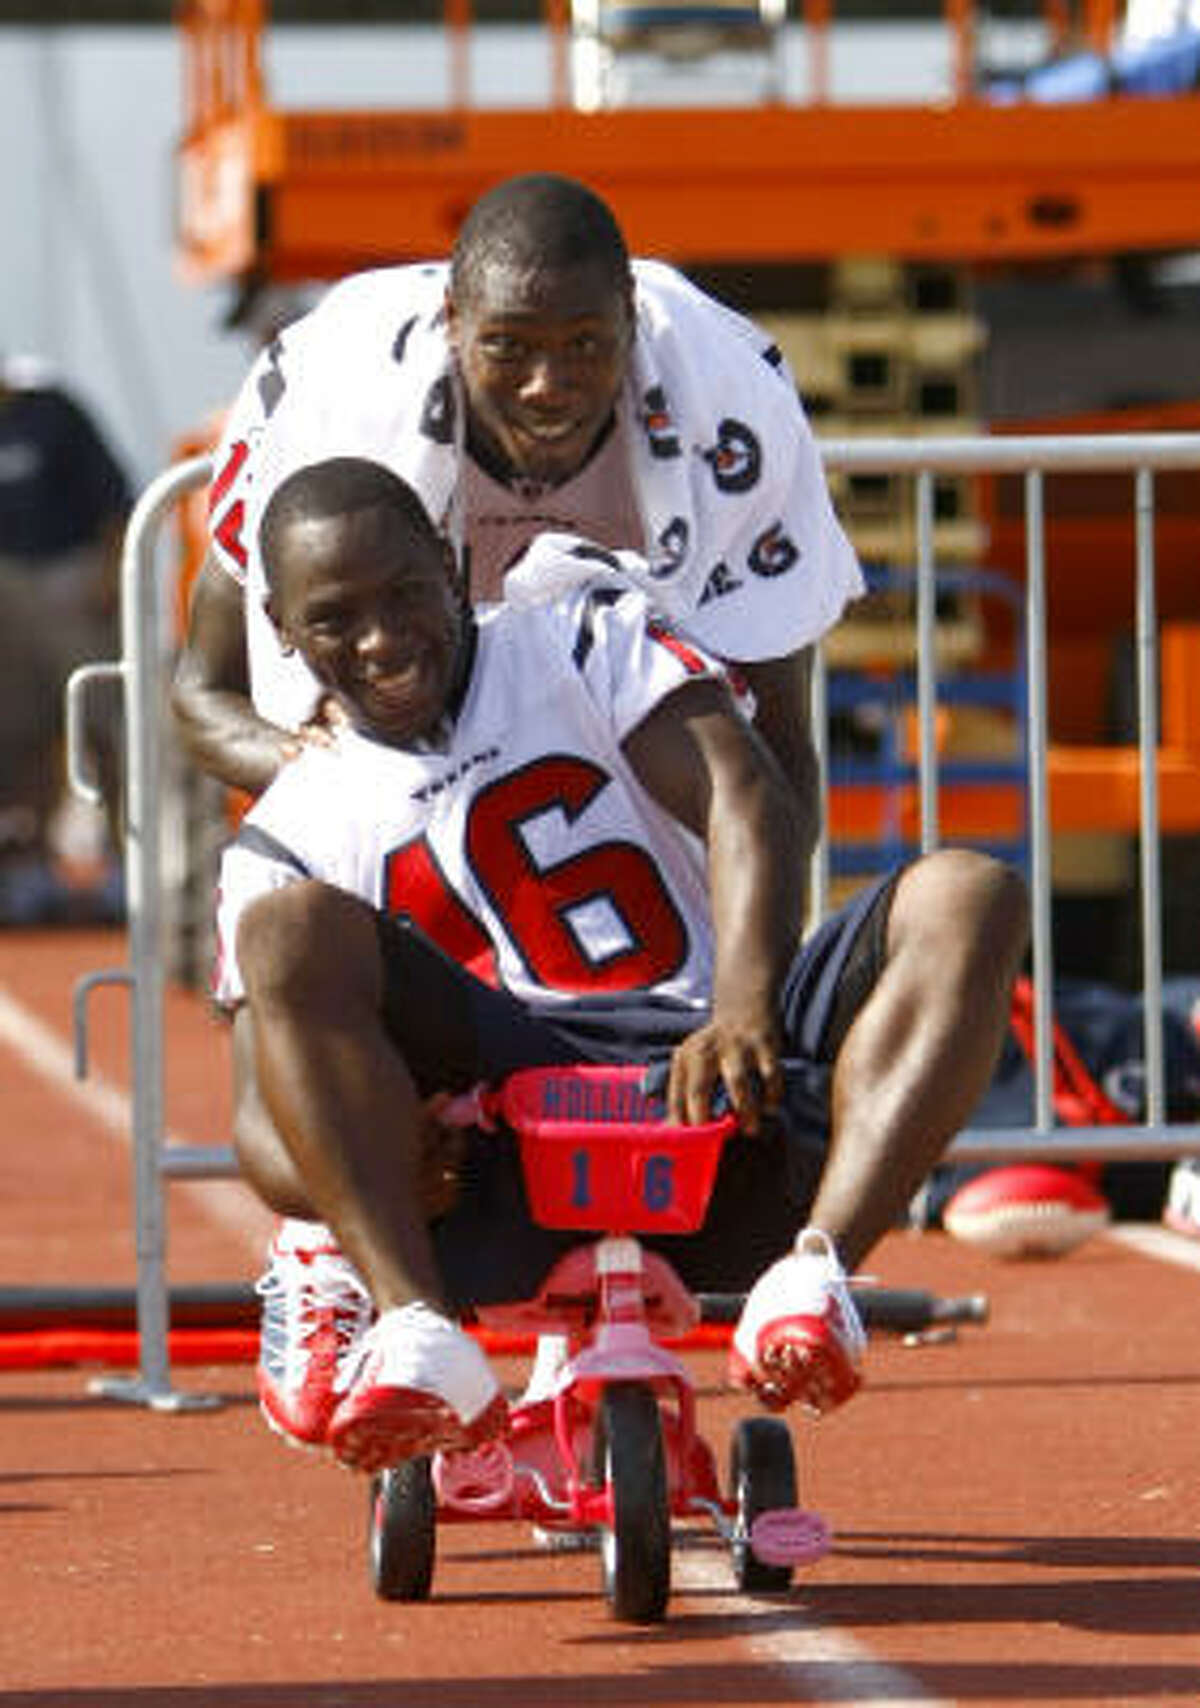 Texans rookie receiver Trindon Holliday, a sixth-round pick who is 5-foot-5 and 160 pounds, had his dose of hazing when several veterans joked he was too small for the stationary bikes that injured players ride during practice. On Aug. 4, a pink tricycle had Holliday's name and number on it, right next to the stationary bikes. After practice, Holliday was a good sport by getting on the tricycle and letting receiver Jacoby Jones wheel him around.